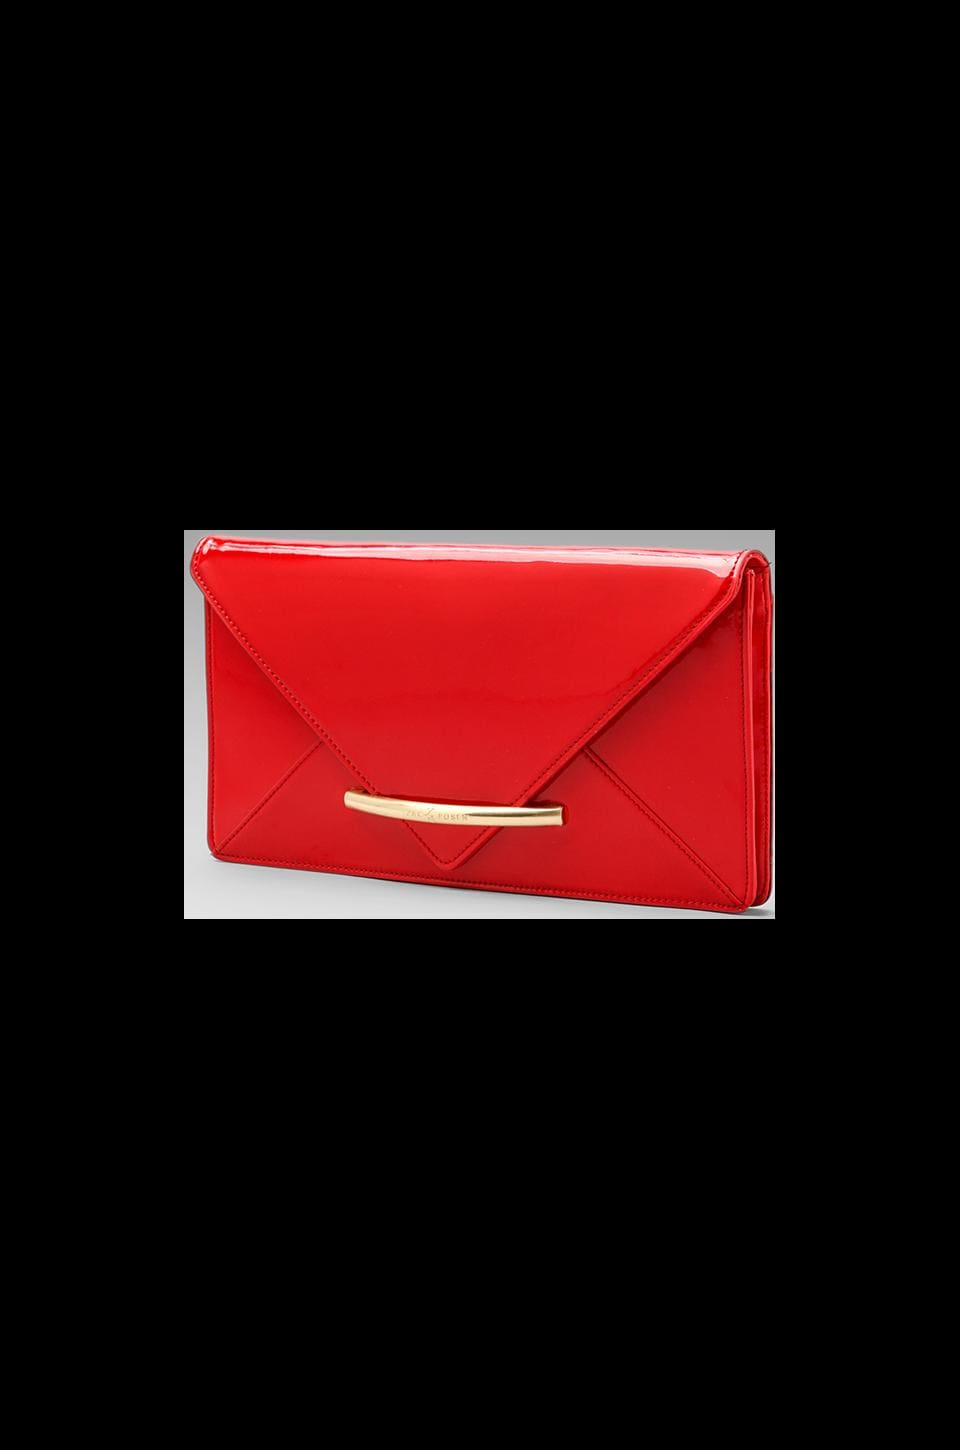 Z Spoke by Zac Posen Marlene Oversized Clutch in Poppy